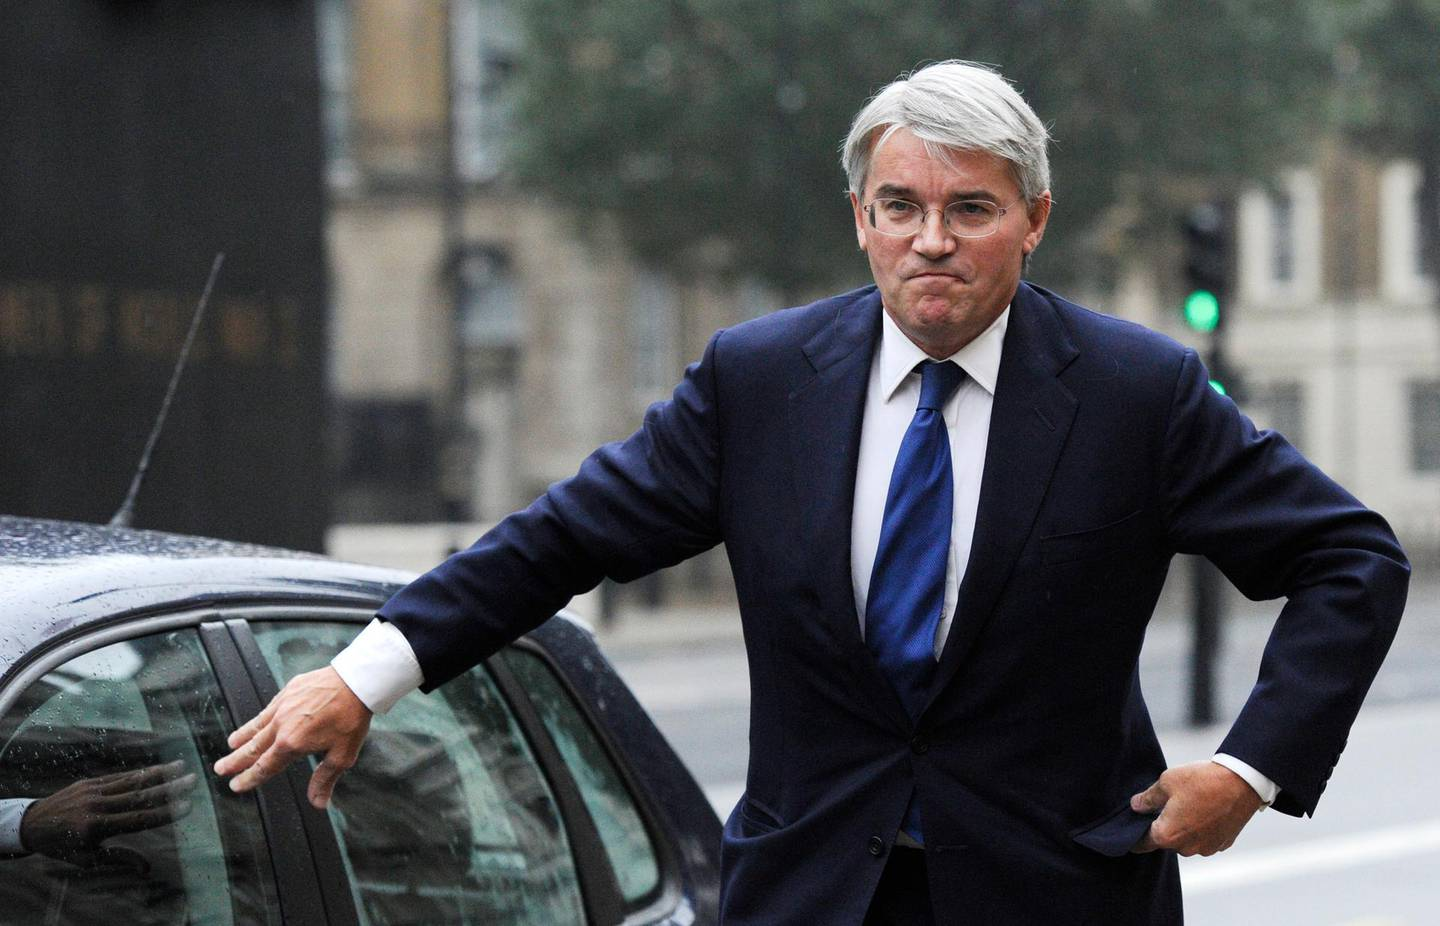 epa03408571 Andrew Mitchell, The Conservative Party Chief Whip speaks to the media, outside the Cabinet office in Whitehall, central London, England, 24 September 2012. Reports state that Andrew Mitchell has apologised for not showing a police officer enough respect after the officer  stopped him cycling out of the main Downing Street gate and directing him to the smaller pedestrian gate, and allegations then were made that the Chief Whip swore at the officer. Andrew Mitchell maintains he did not use the words attributed to him.  EPA/FACUNDO ARRIZABALAGA